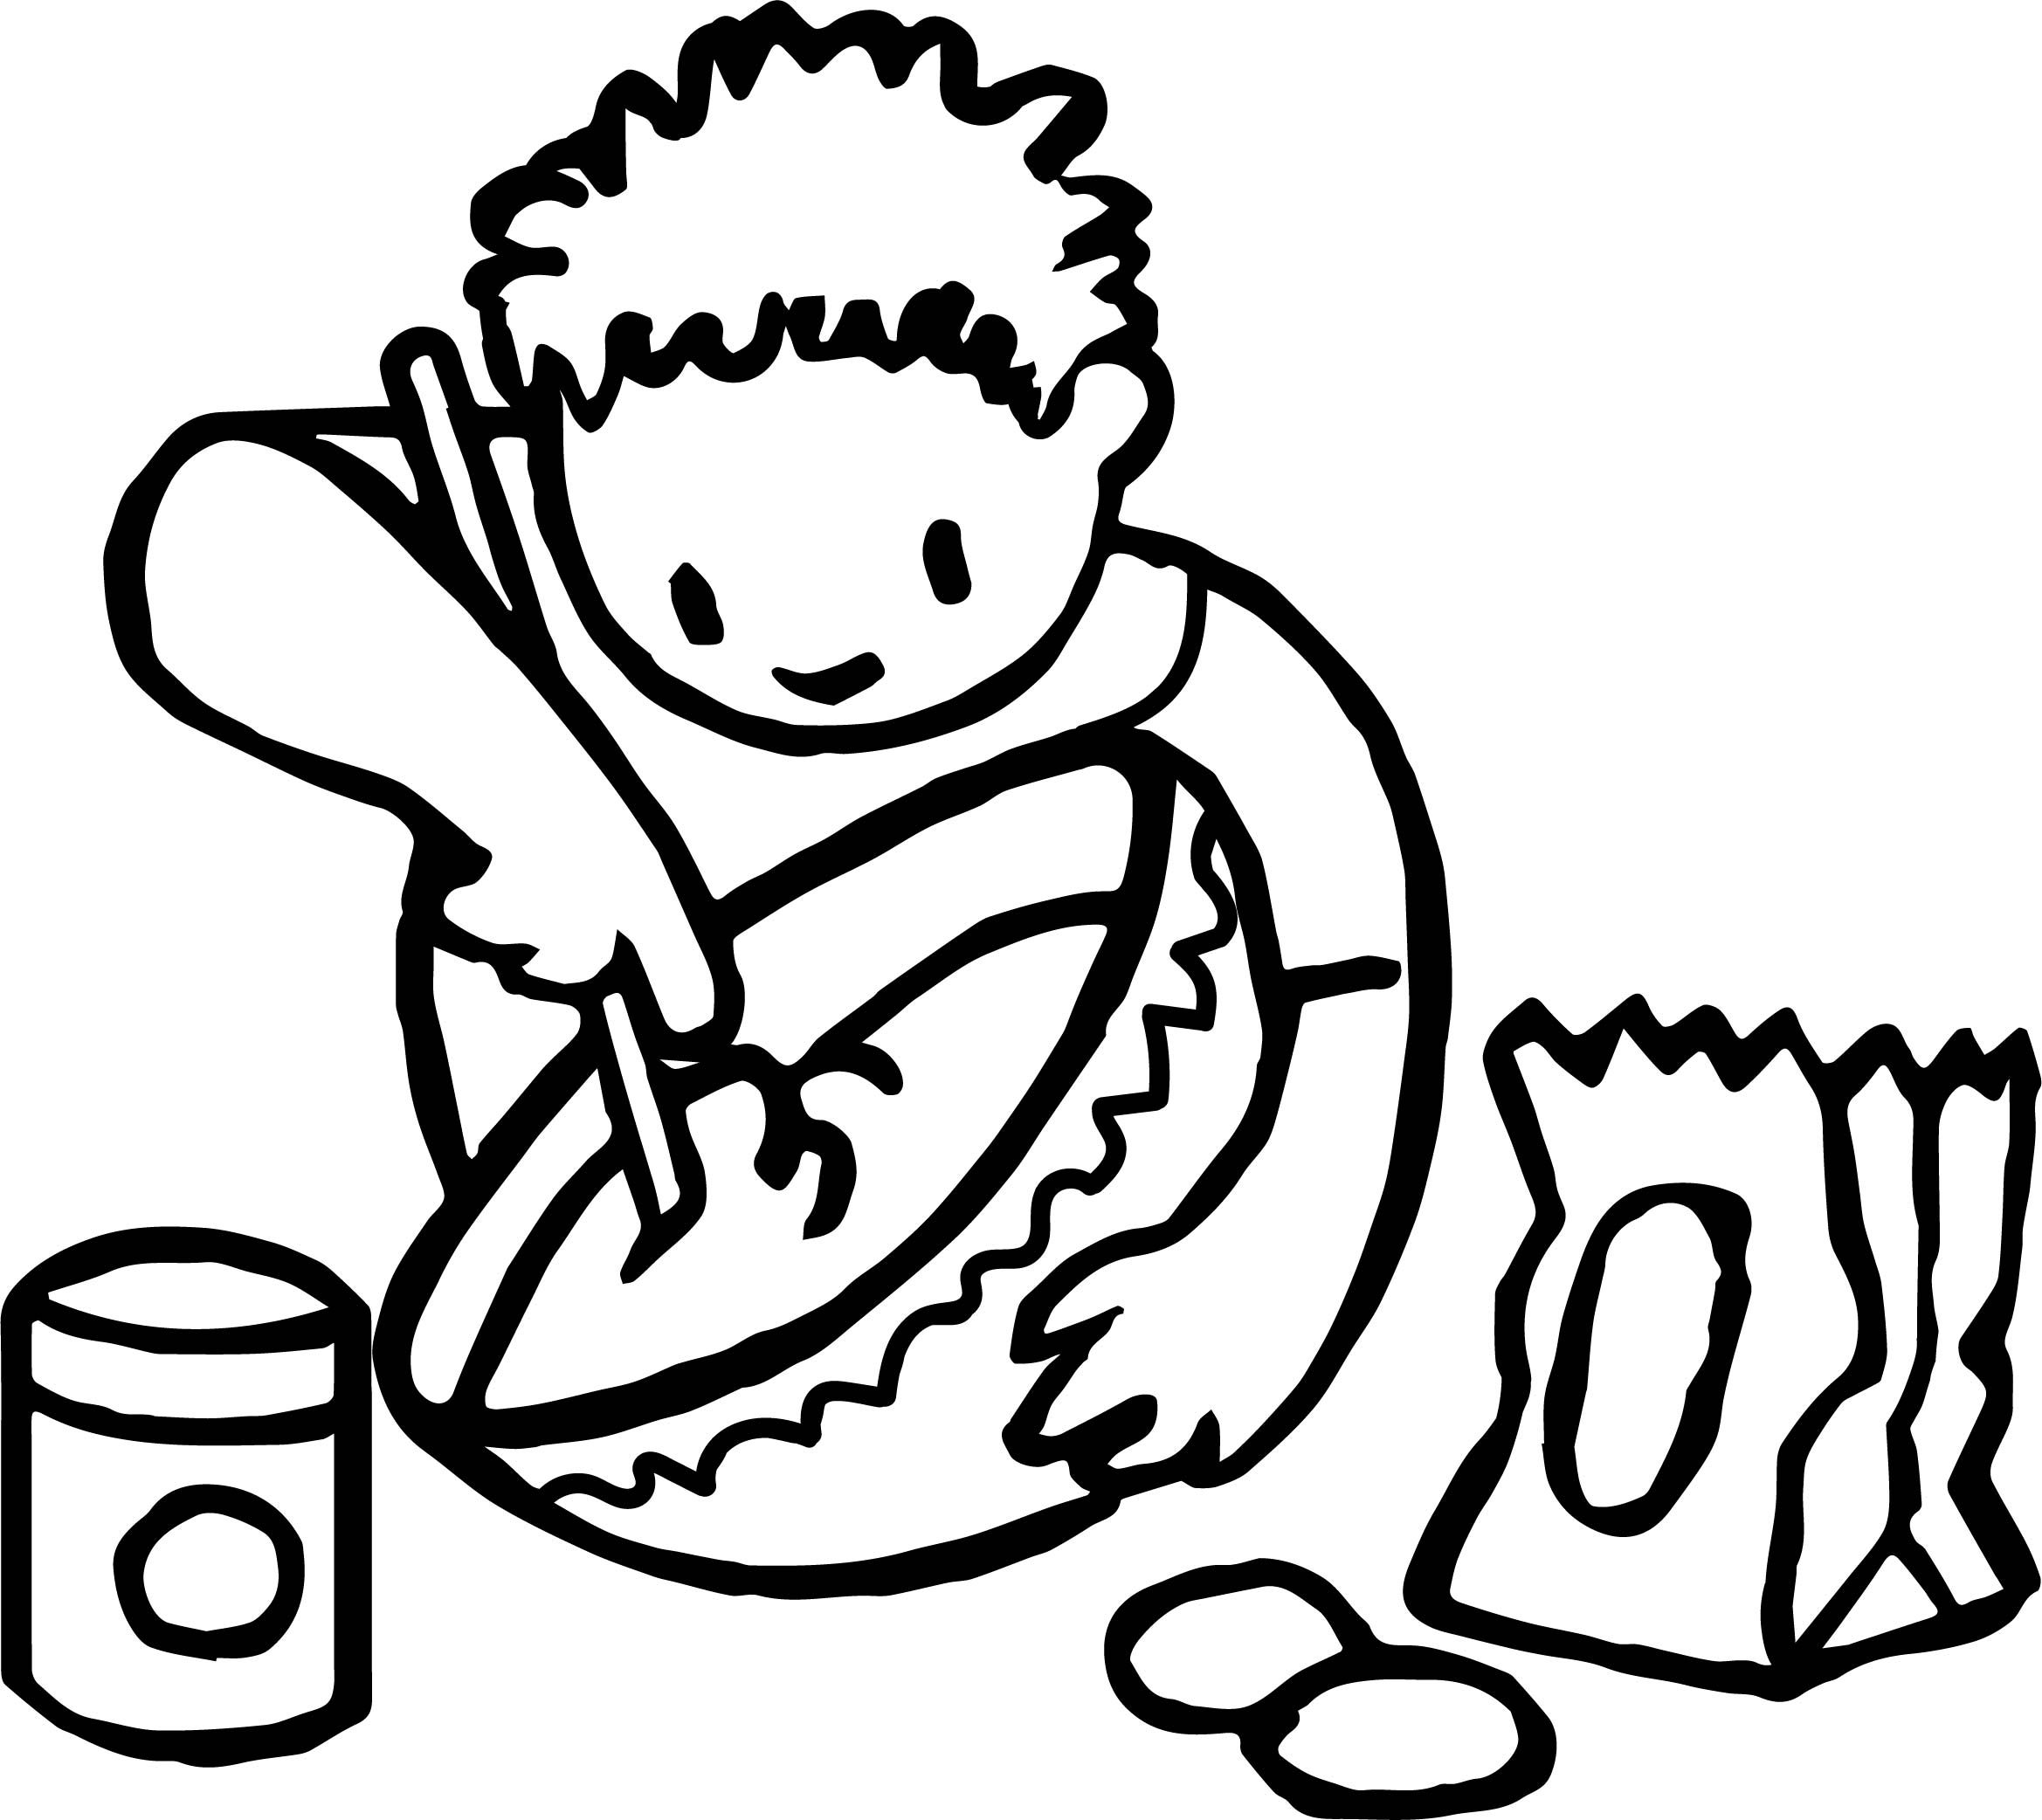 Coloring Pages For Boys | Free download best Coloring Pages For Boys ...